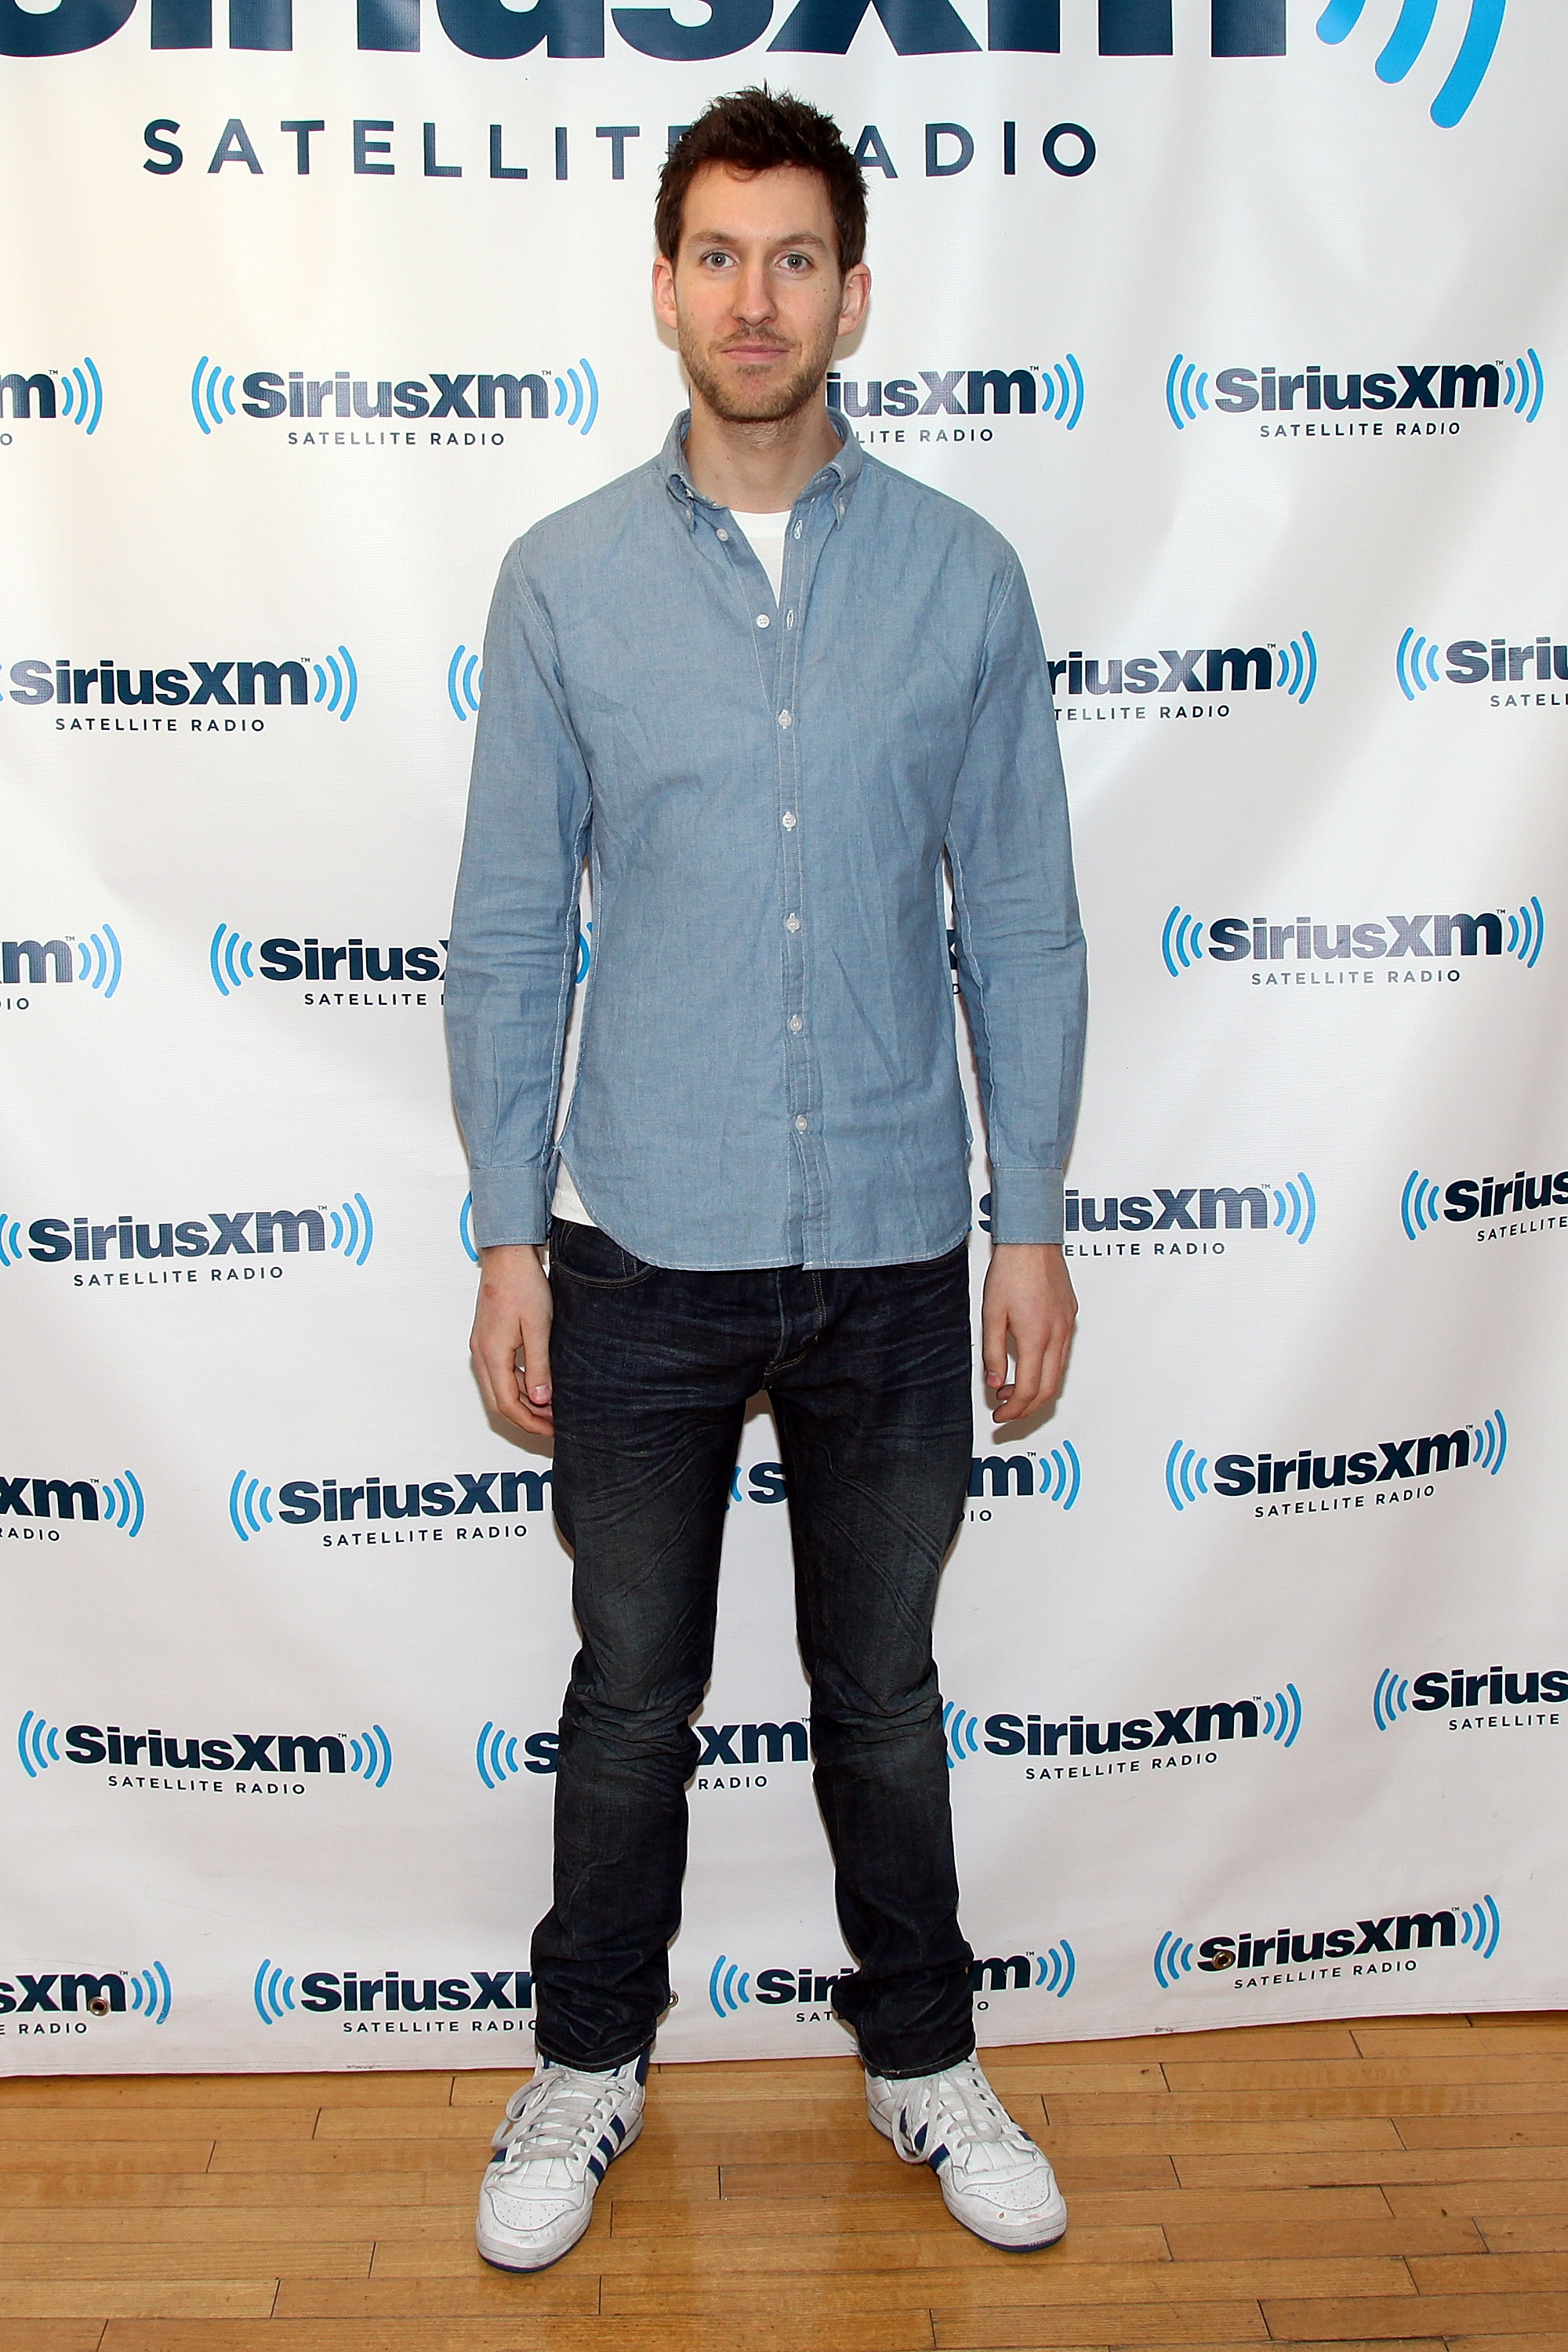 NEW YORK, NY - JANUARY 20:  DJ Calvin Harris visits SiriusXM Studio on January 20, 2012 in New York City.  (Photo by Taylor Hill/Getty Images)